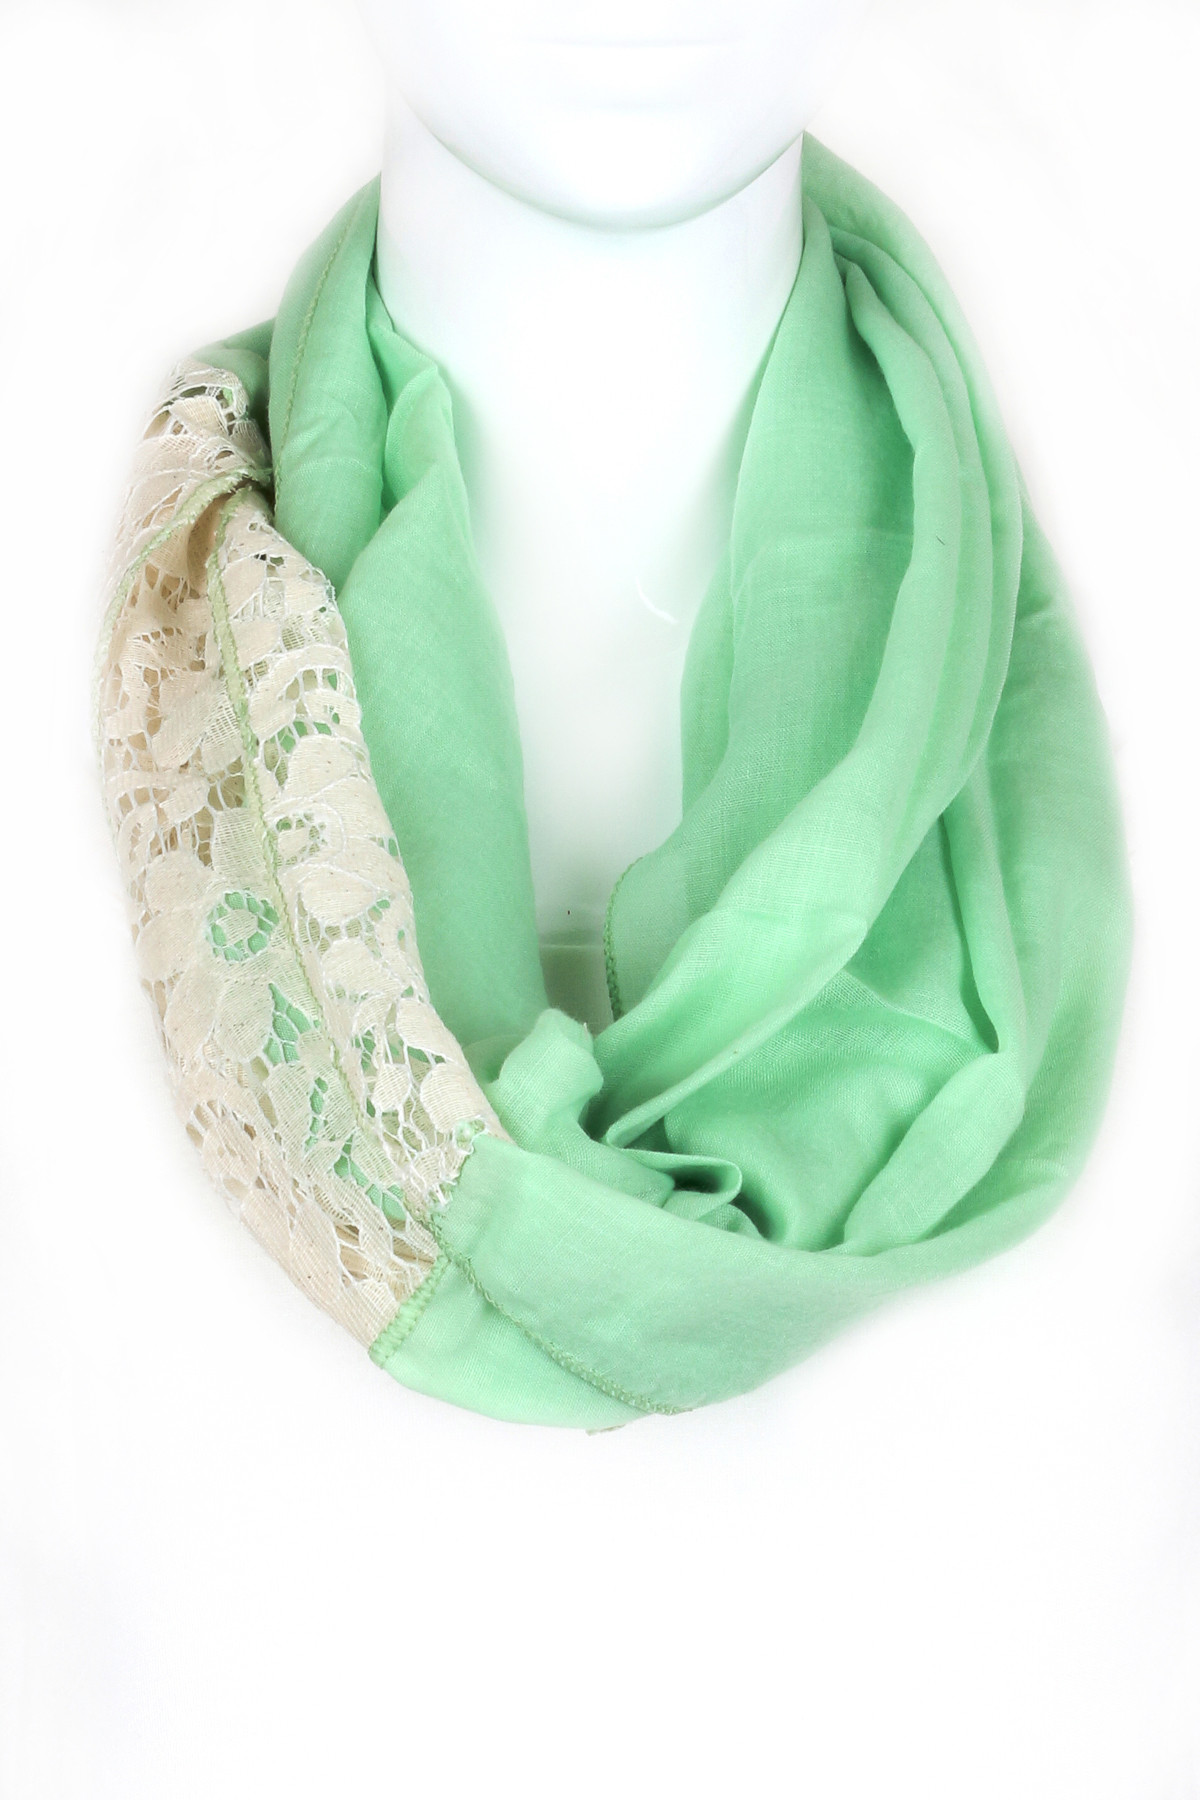 Lovely Floral Lace Infinity Scarf Scarves Lace Infinity Scarf Of Charming 45 Ideas Lace Infinity Scarf